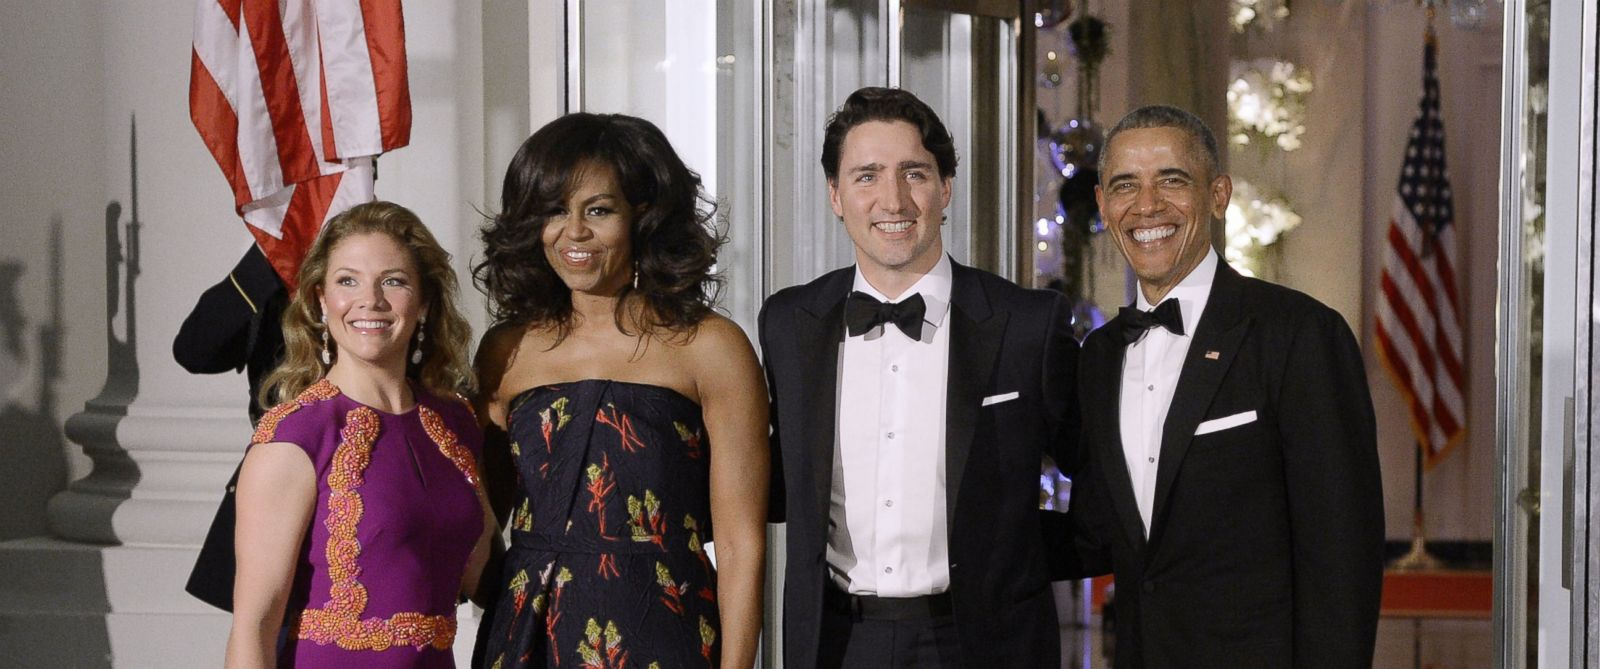 PHOTO: First Lady Sophie Trudeau of Canada, First Lady Michelle Obama, Prime Minister Justin Trudeau of Canada and President Barack Obama pose at the North Portico of the White House, March 10, 2016, in Washington.